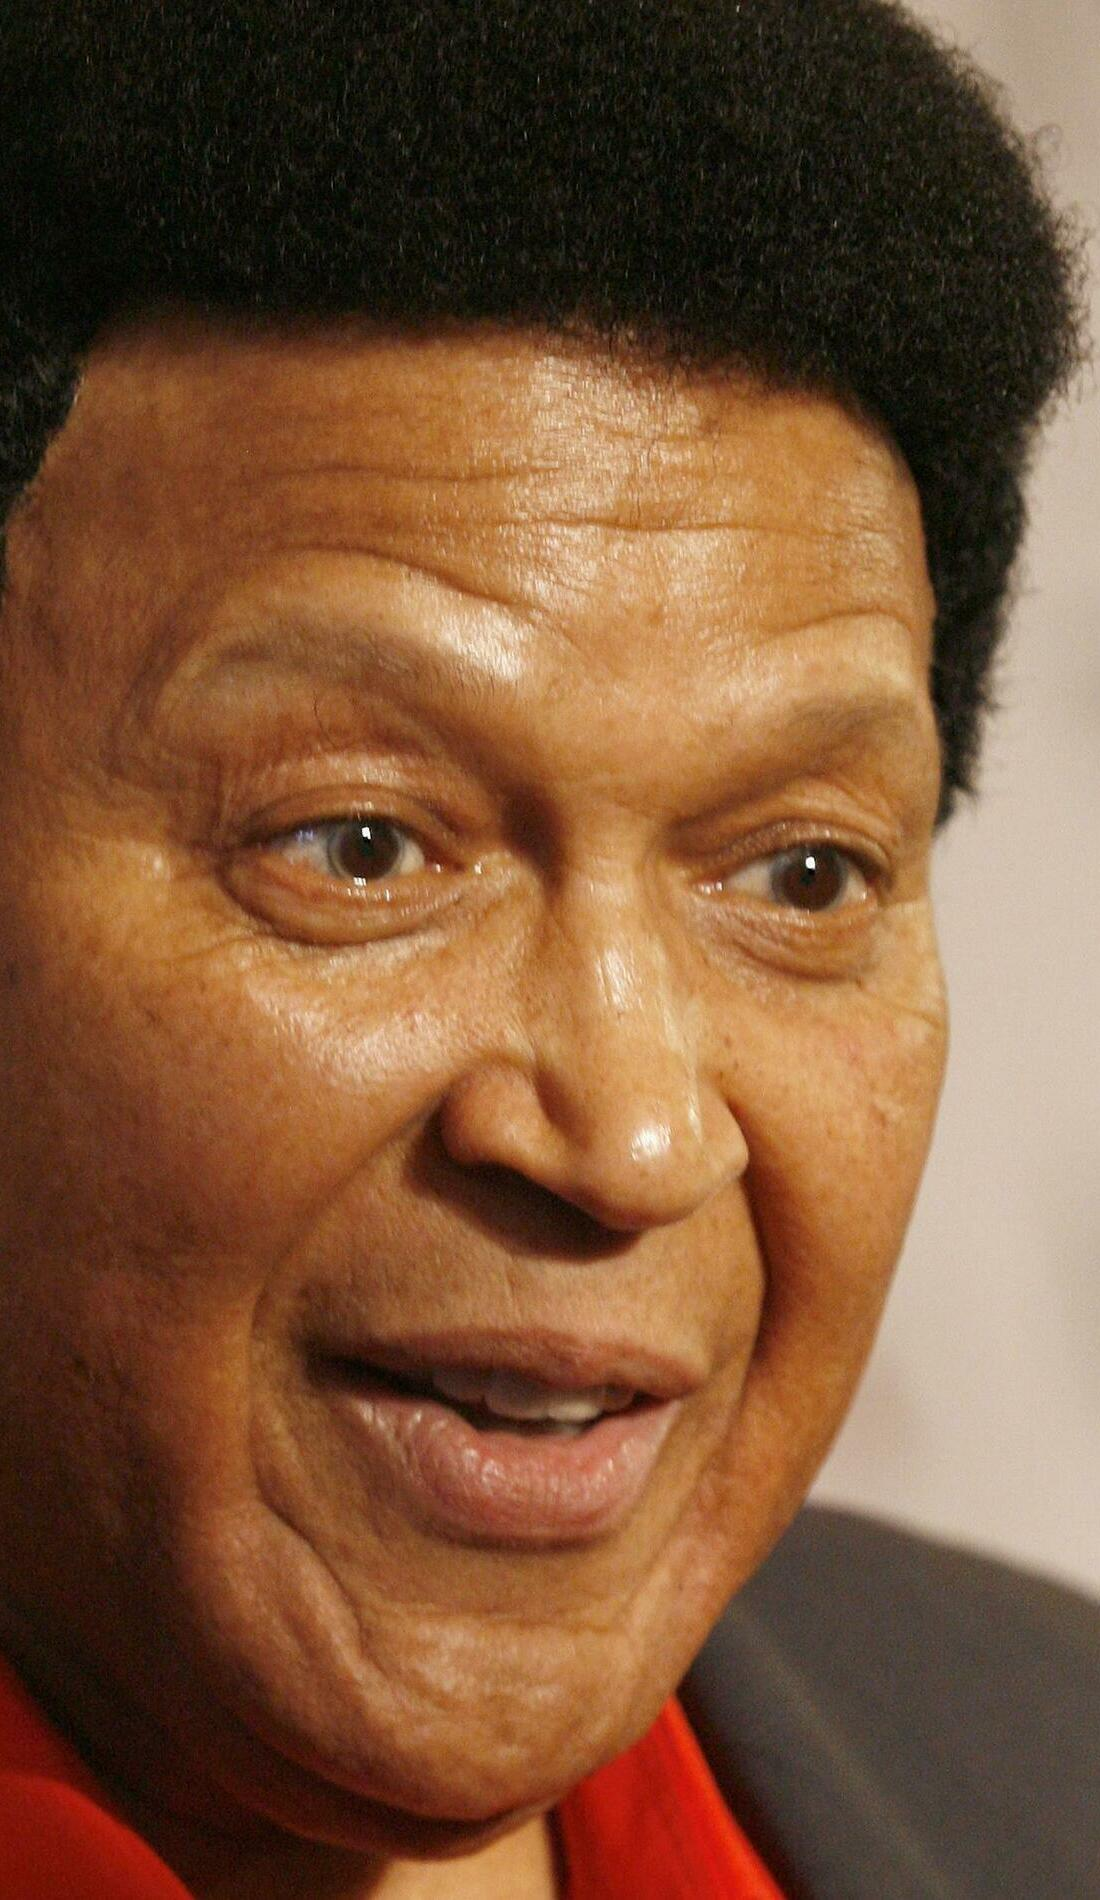 A Chubby Checker live event